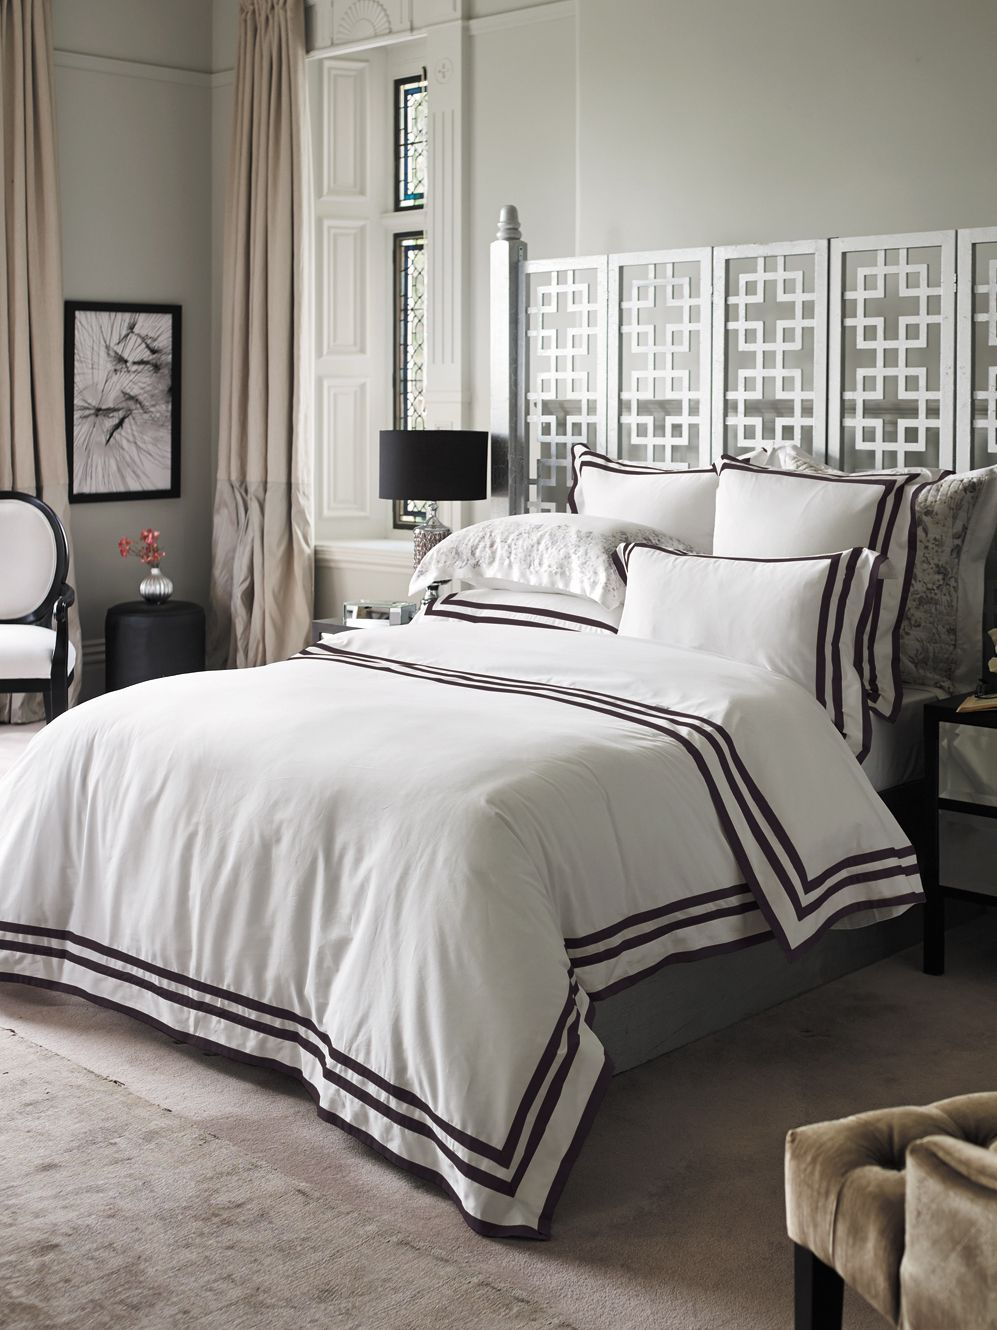 Holroyd ebony king duvet cover timeless look